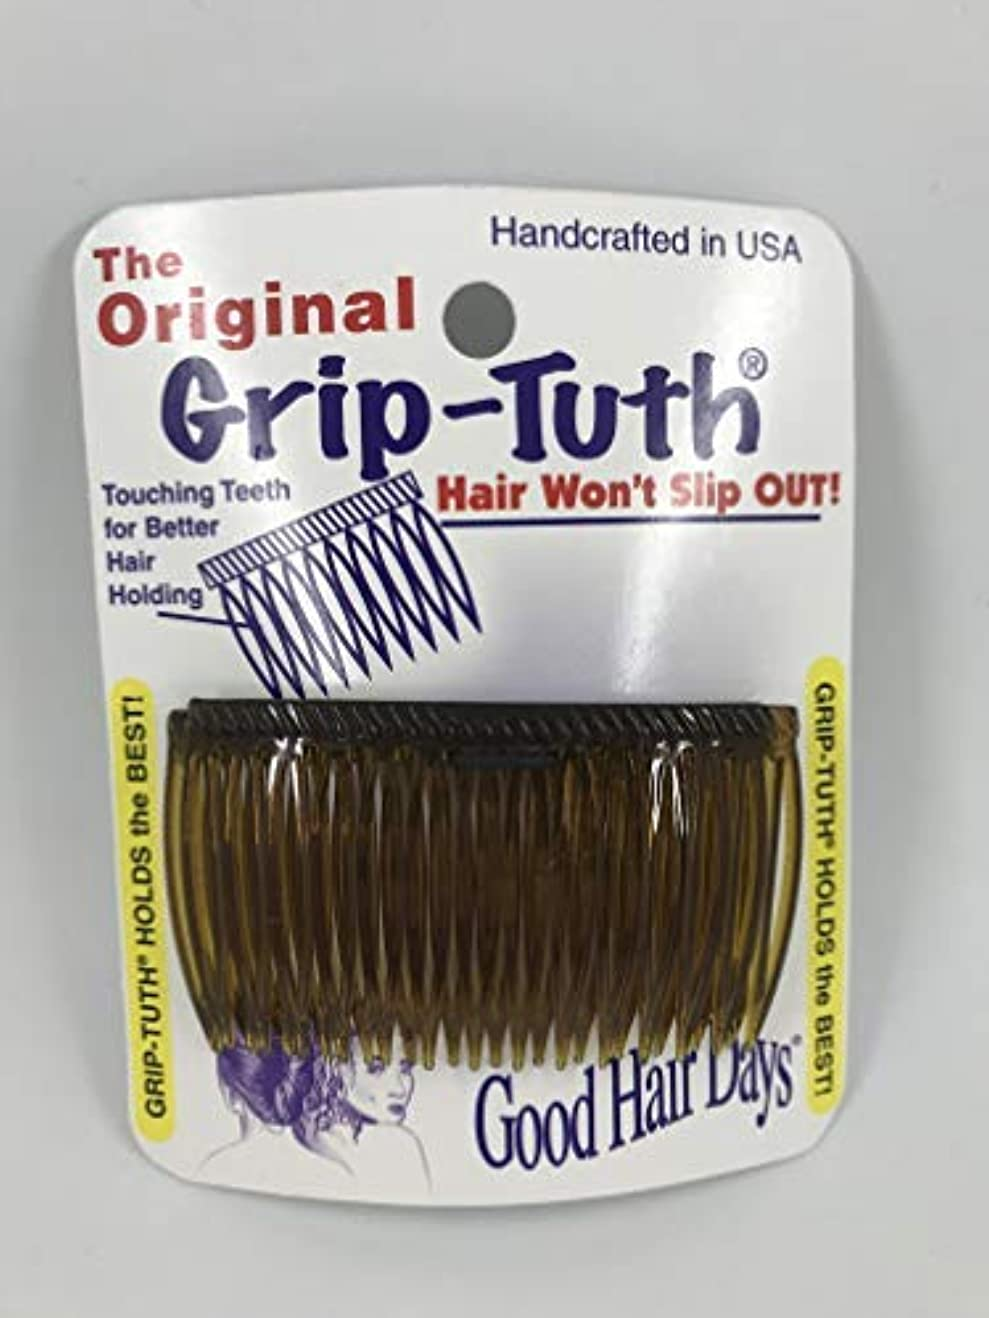 ペイント危険なニュースGood Hair Days Grip Tuth Combs 40405 Set of 2, Tortoise Shell Color 2 3/4